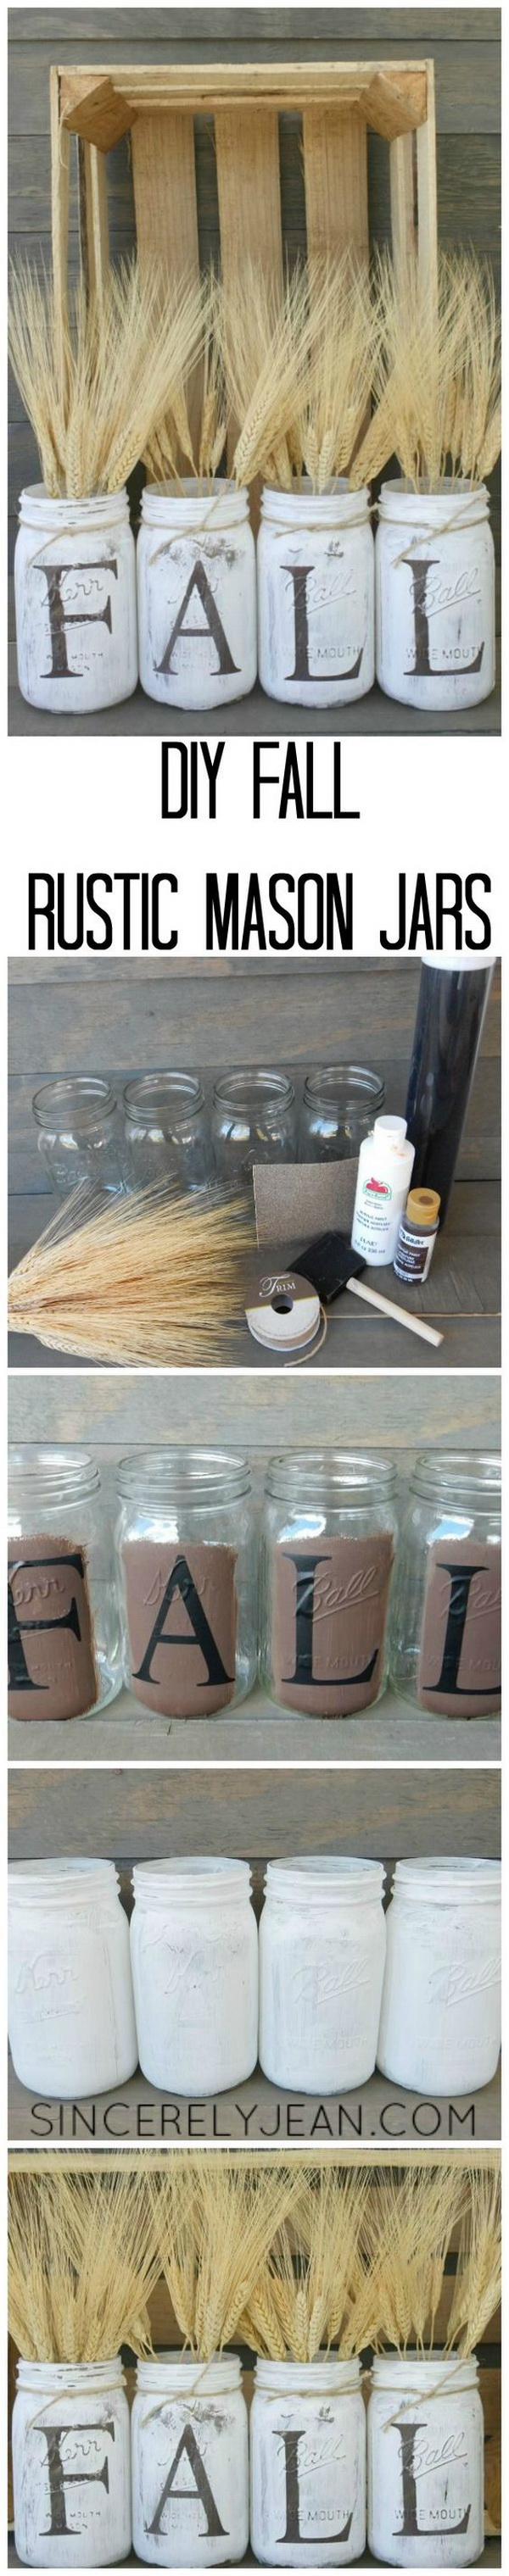 DIY Fall Rustic Mason Jars. Paint and distress mason jars and filled with whea! So easy and quick to do and makes a great addition to your fall decoration with rustic flair.